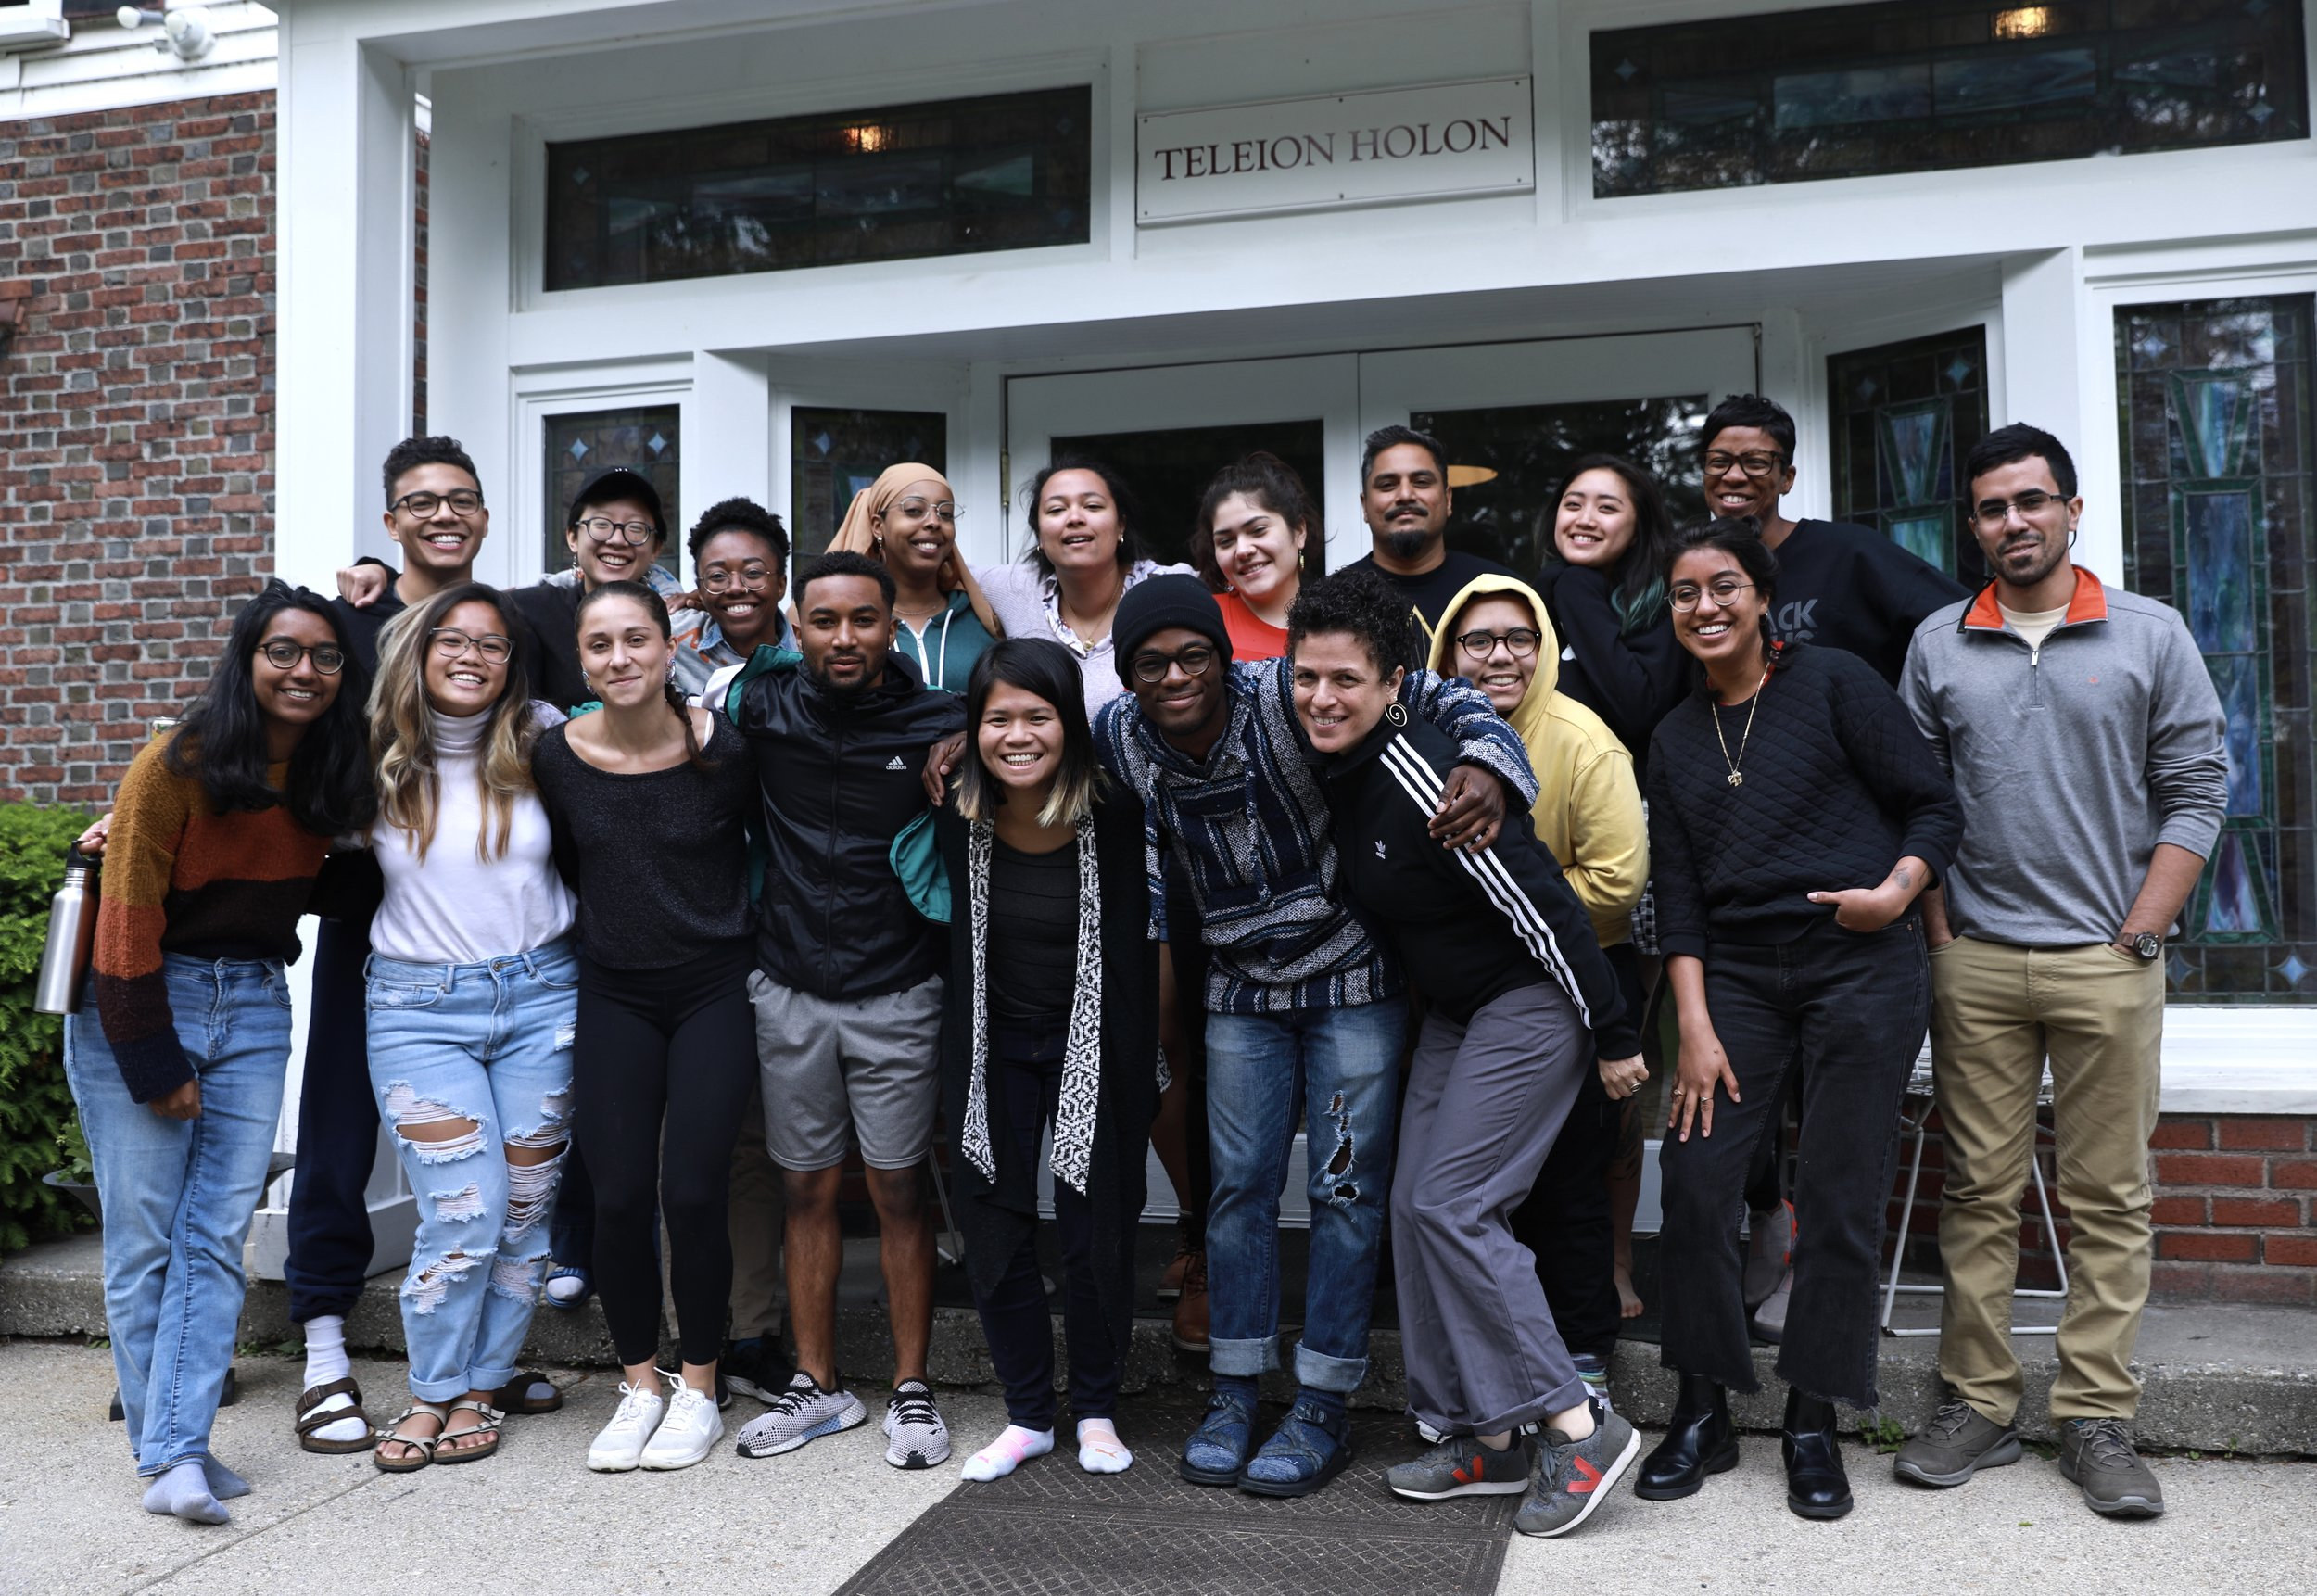 """2019 NeXt doc fellow - """"NeXt Doc is a one-of-a-kind opportunity for some of the most talented young documentary filmmakers in the country at the beginning stages of their careers. The year-long Fellowship kicks off with a week-long gathering in June that is intended to be an intensive skills and community building experience…"""""""